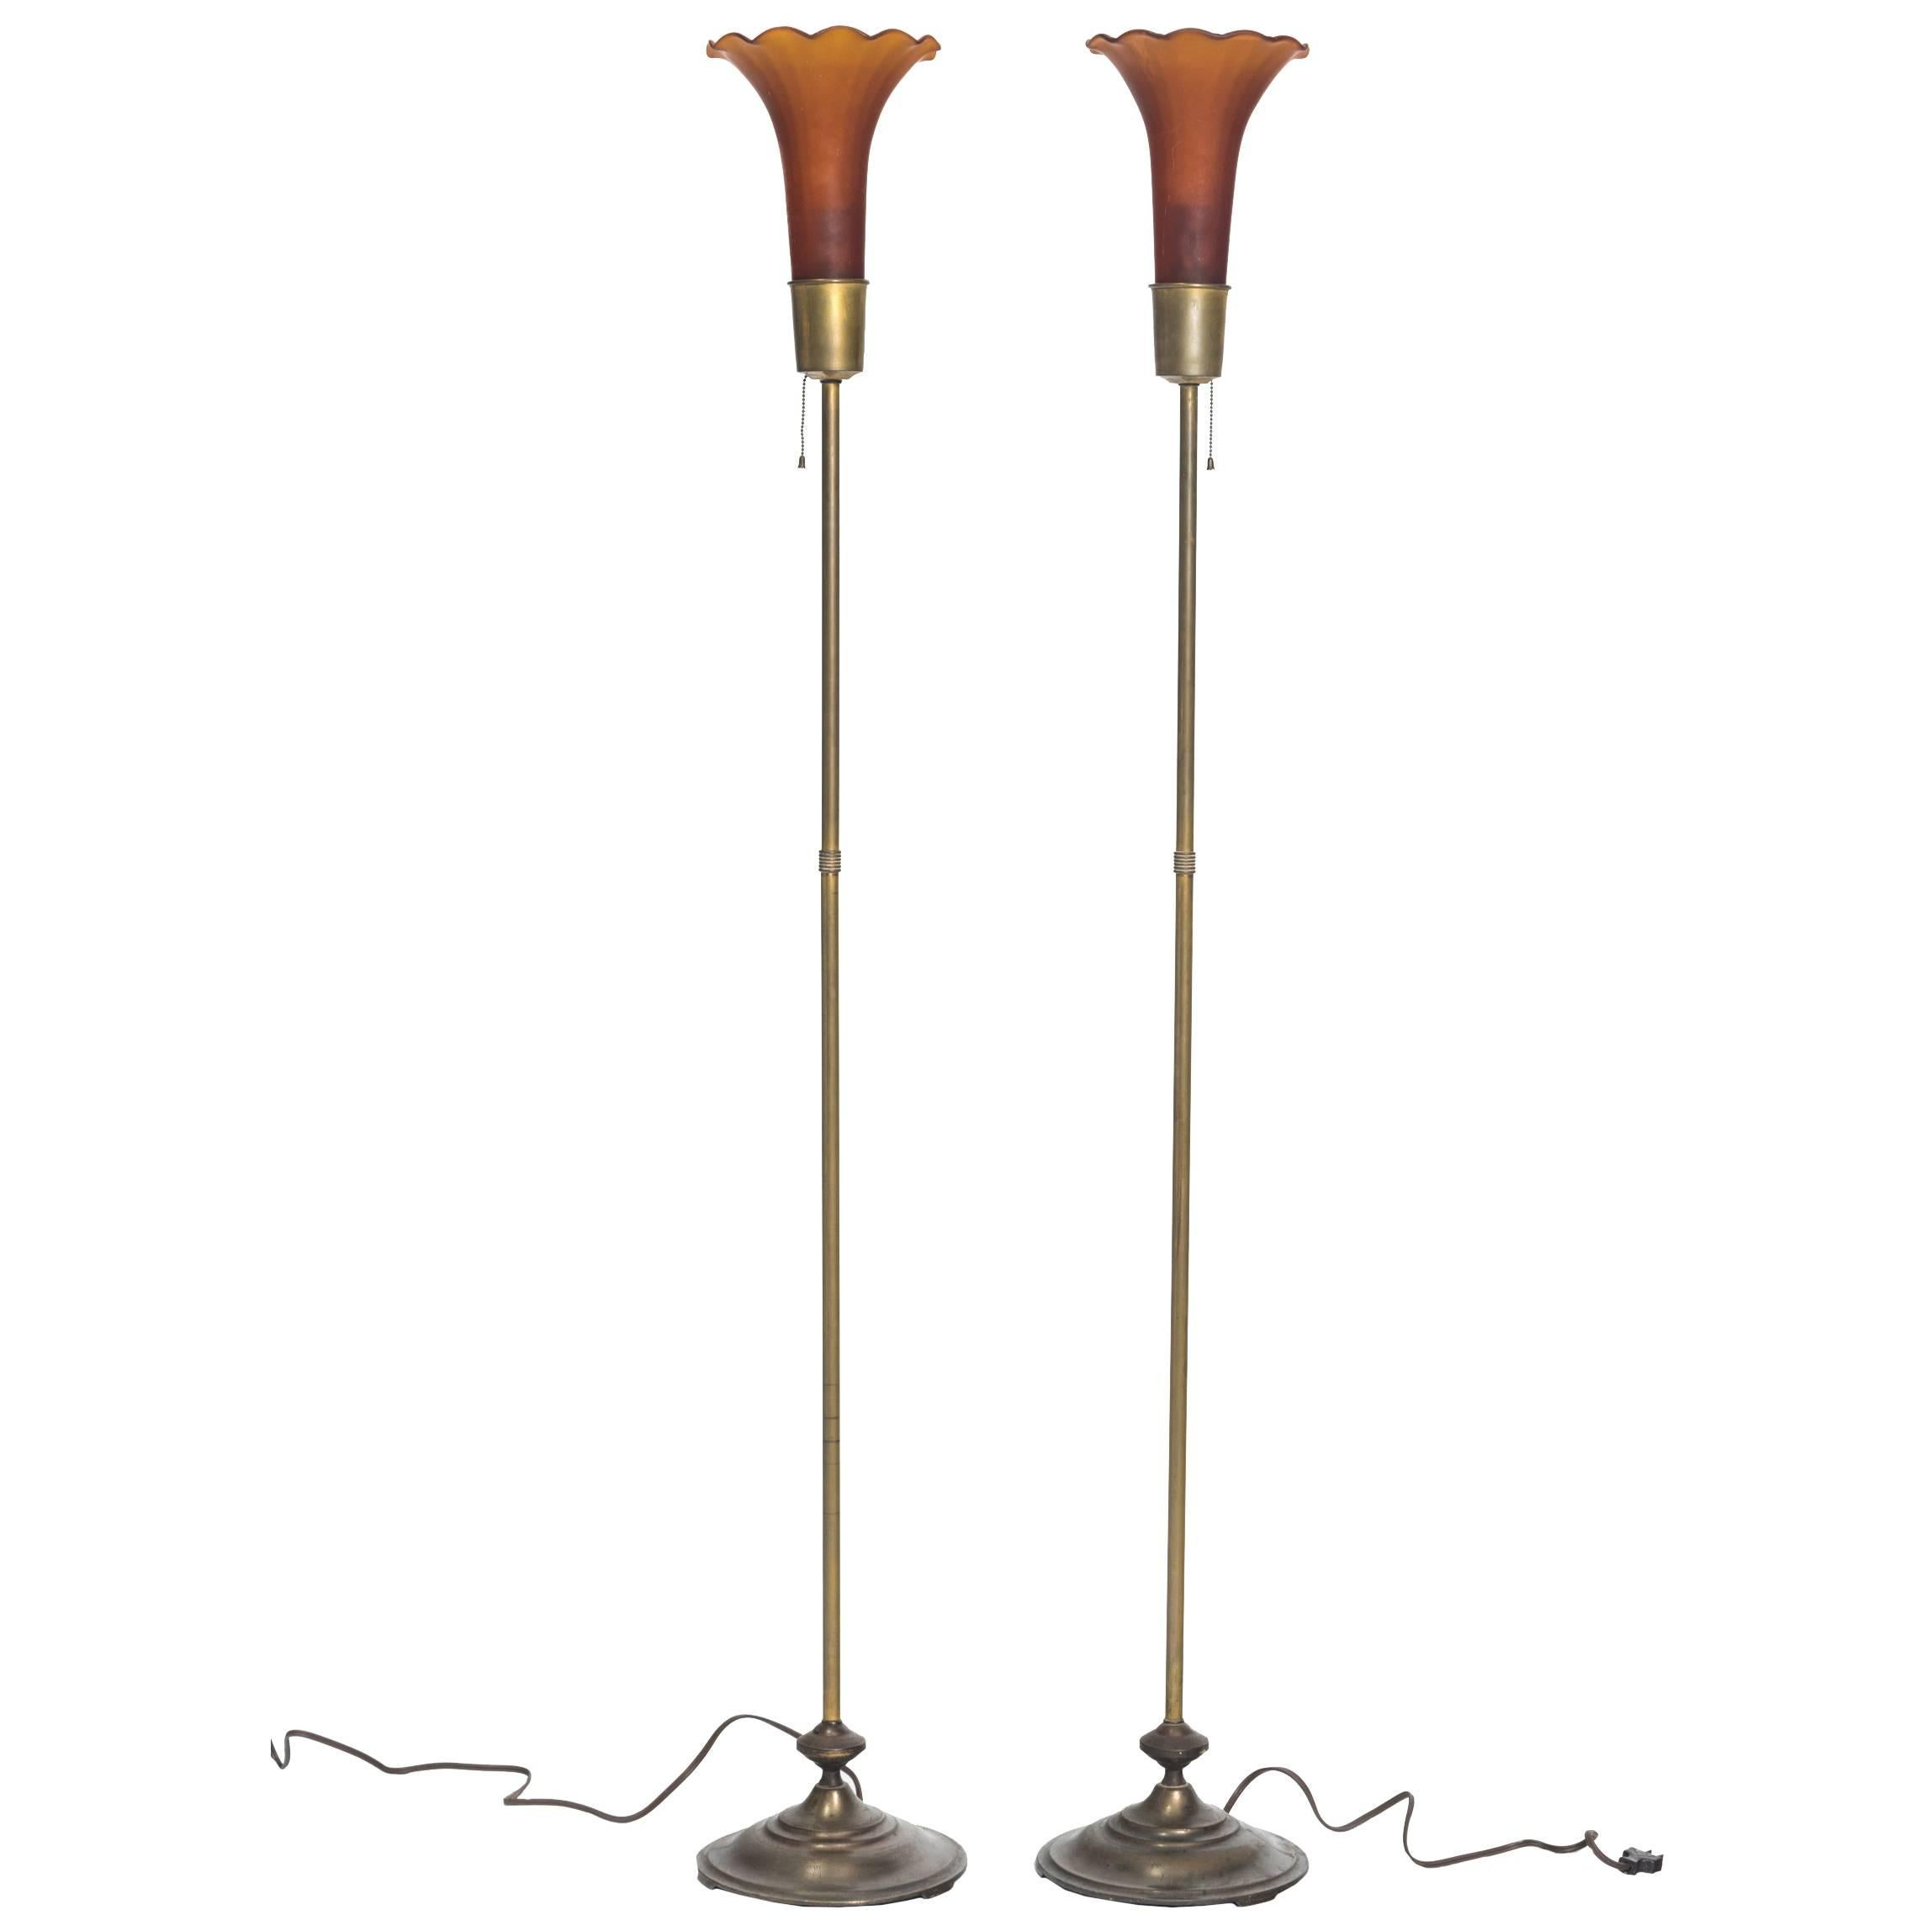 1940s Brass and Glass Floor Lamp